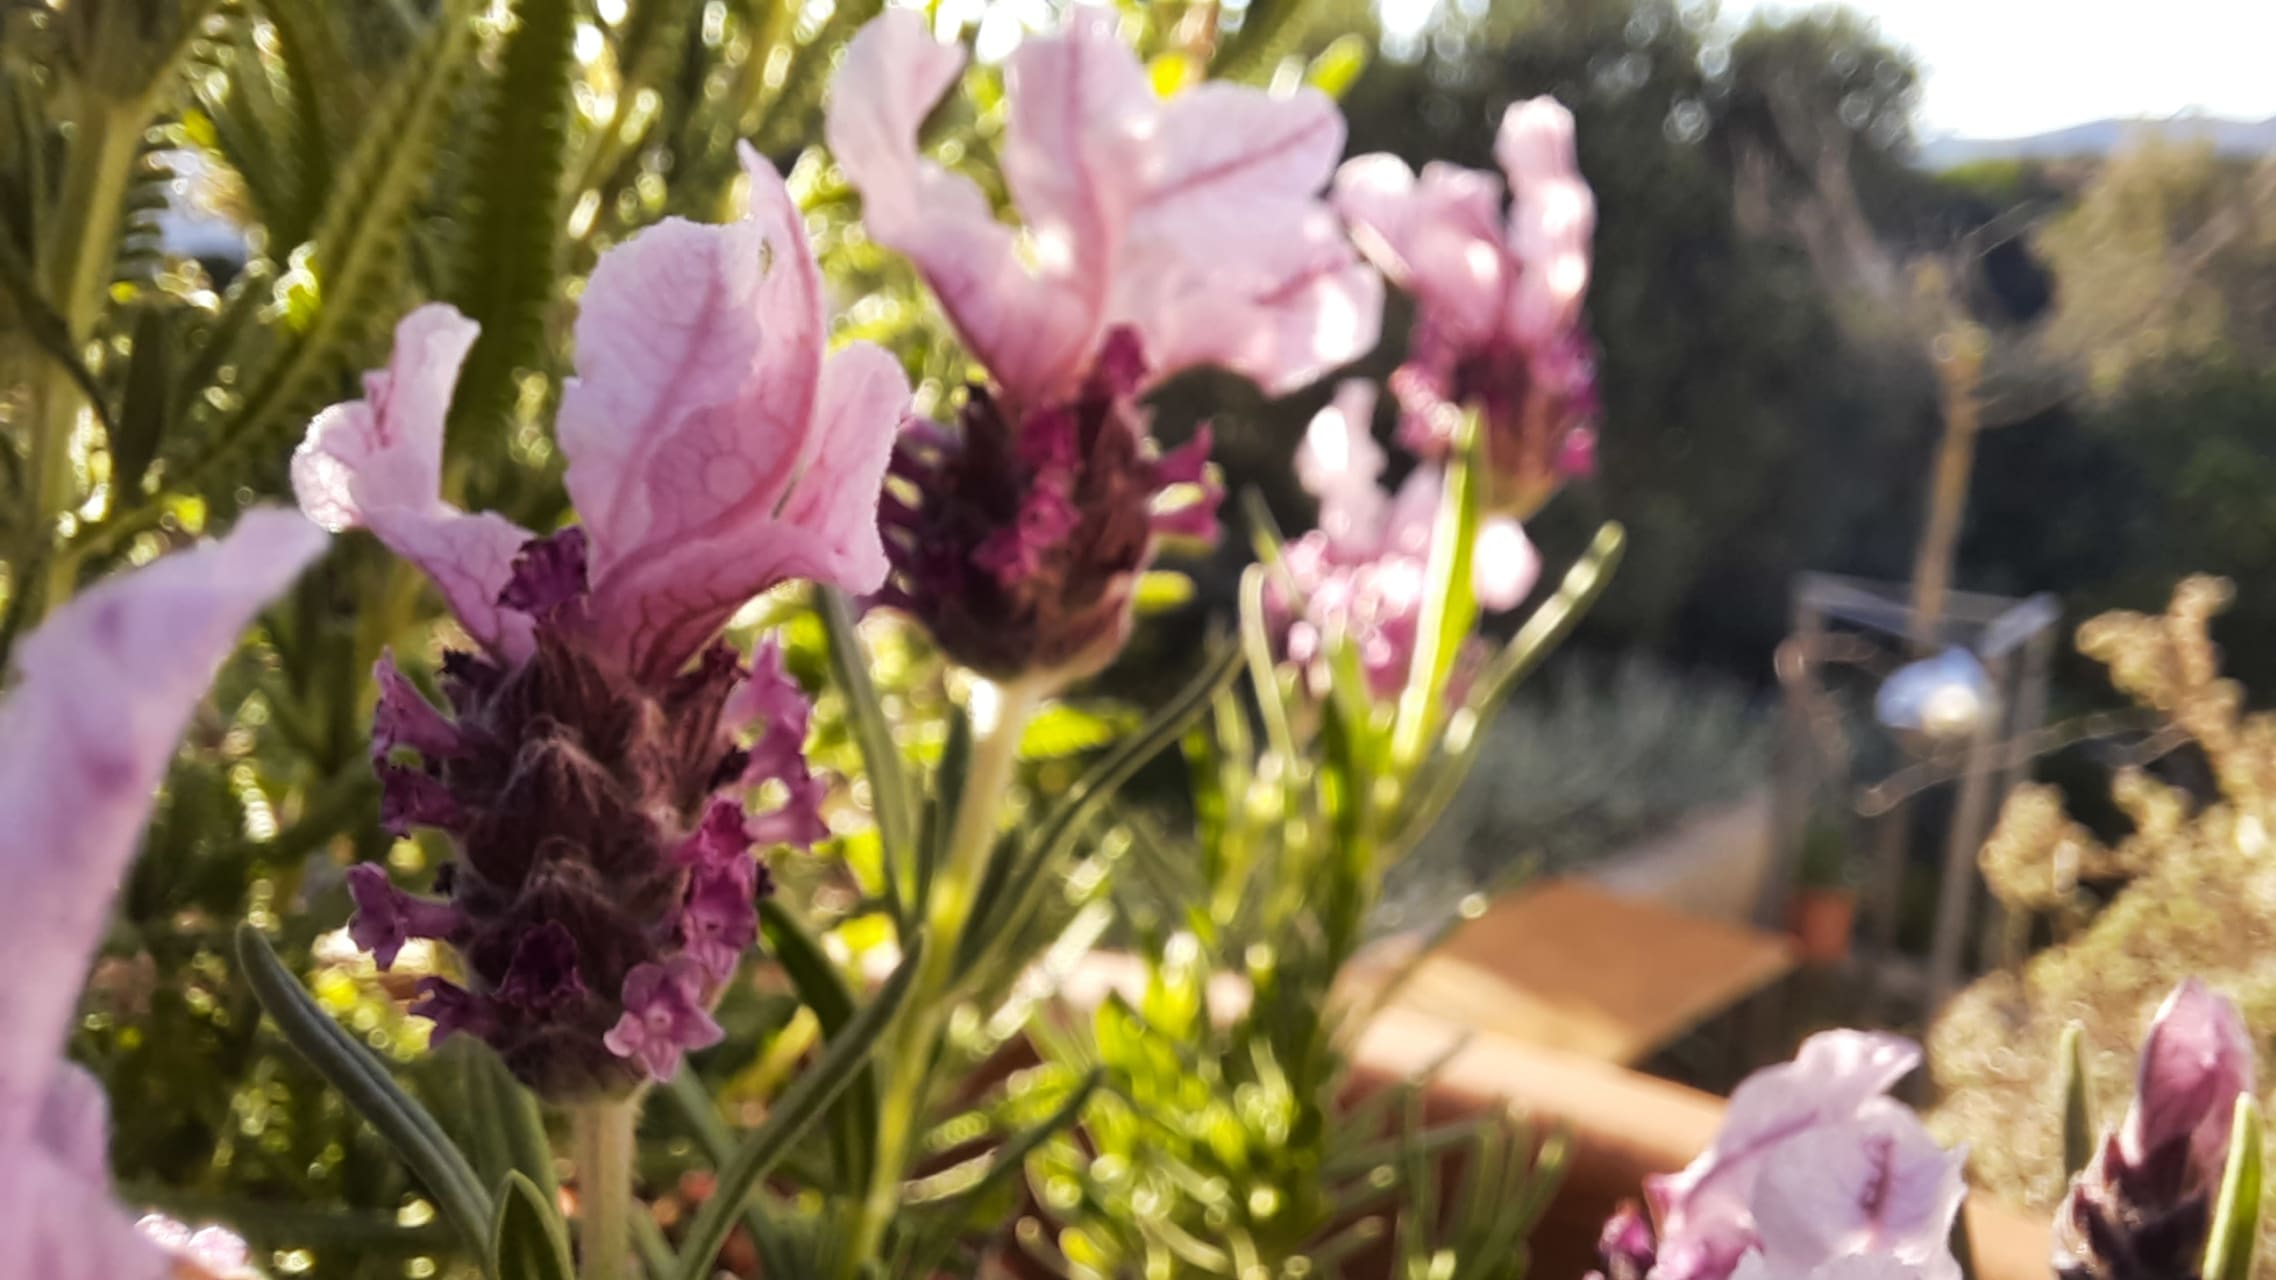 Korcula - Aromatic Herbs, Orchids & Gin Tonic by the Sea